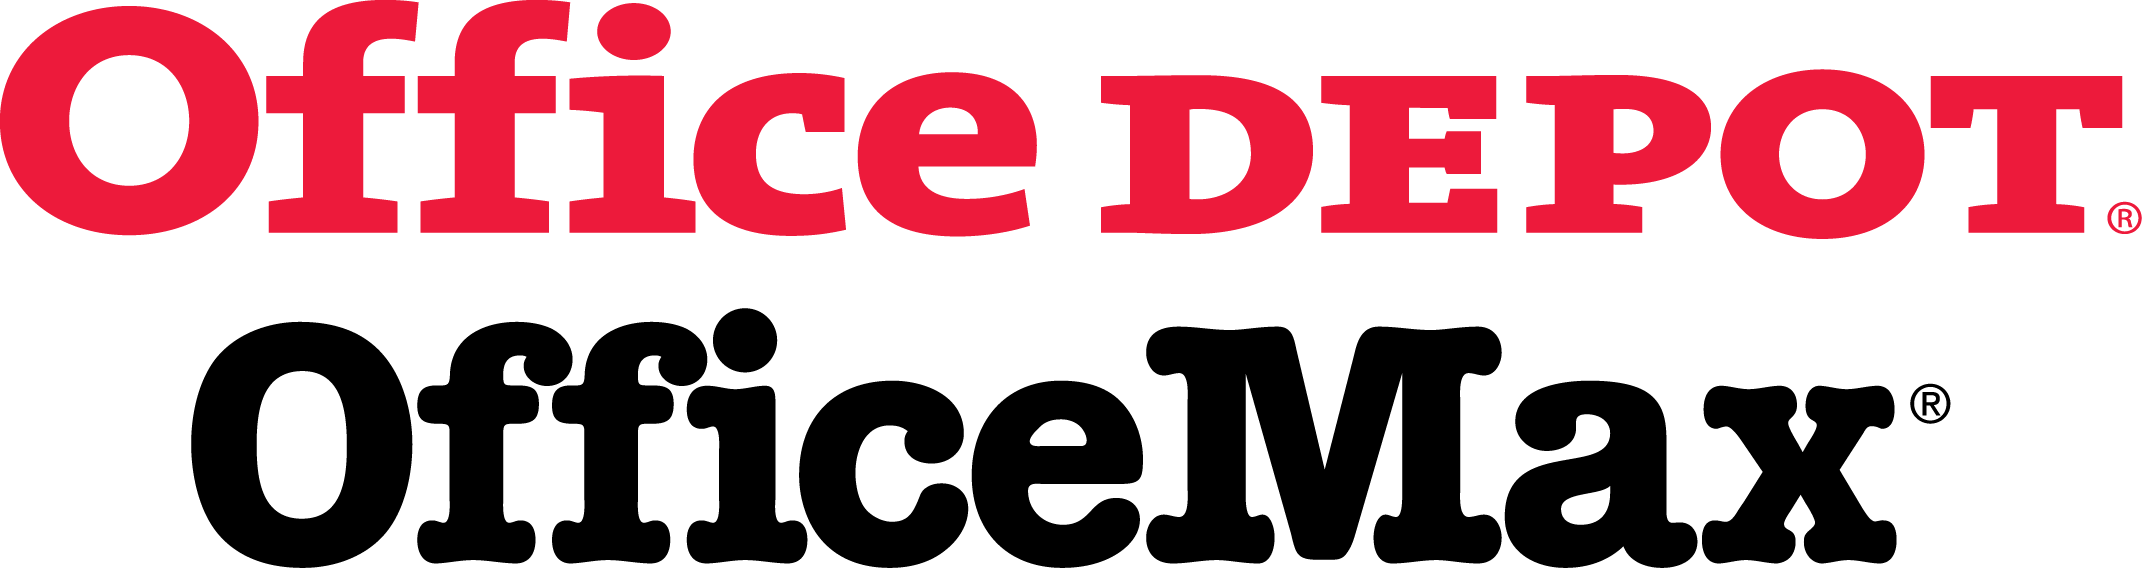 OfficesLogo.png